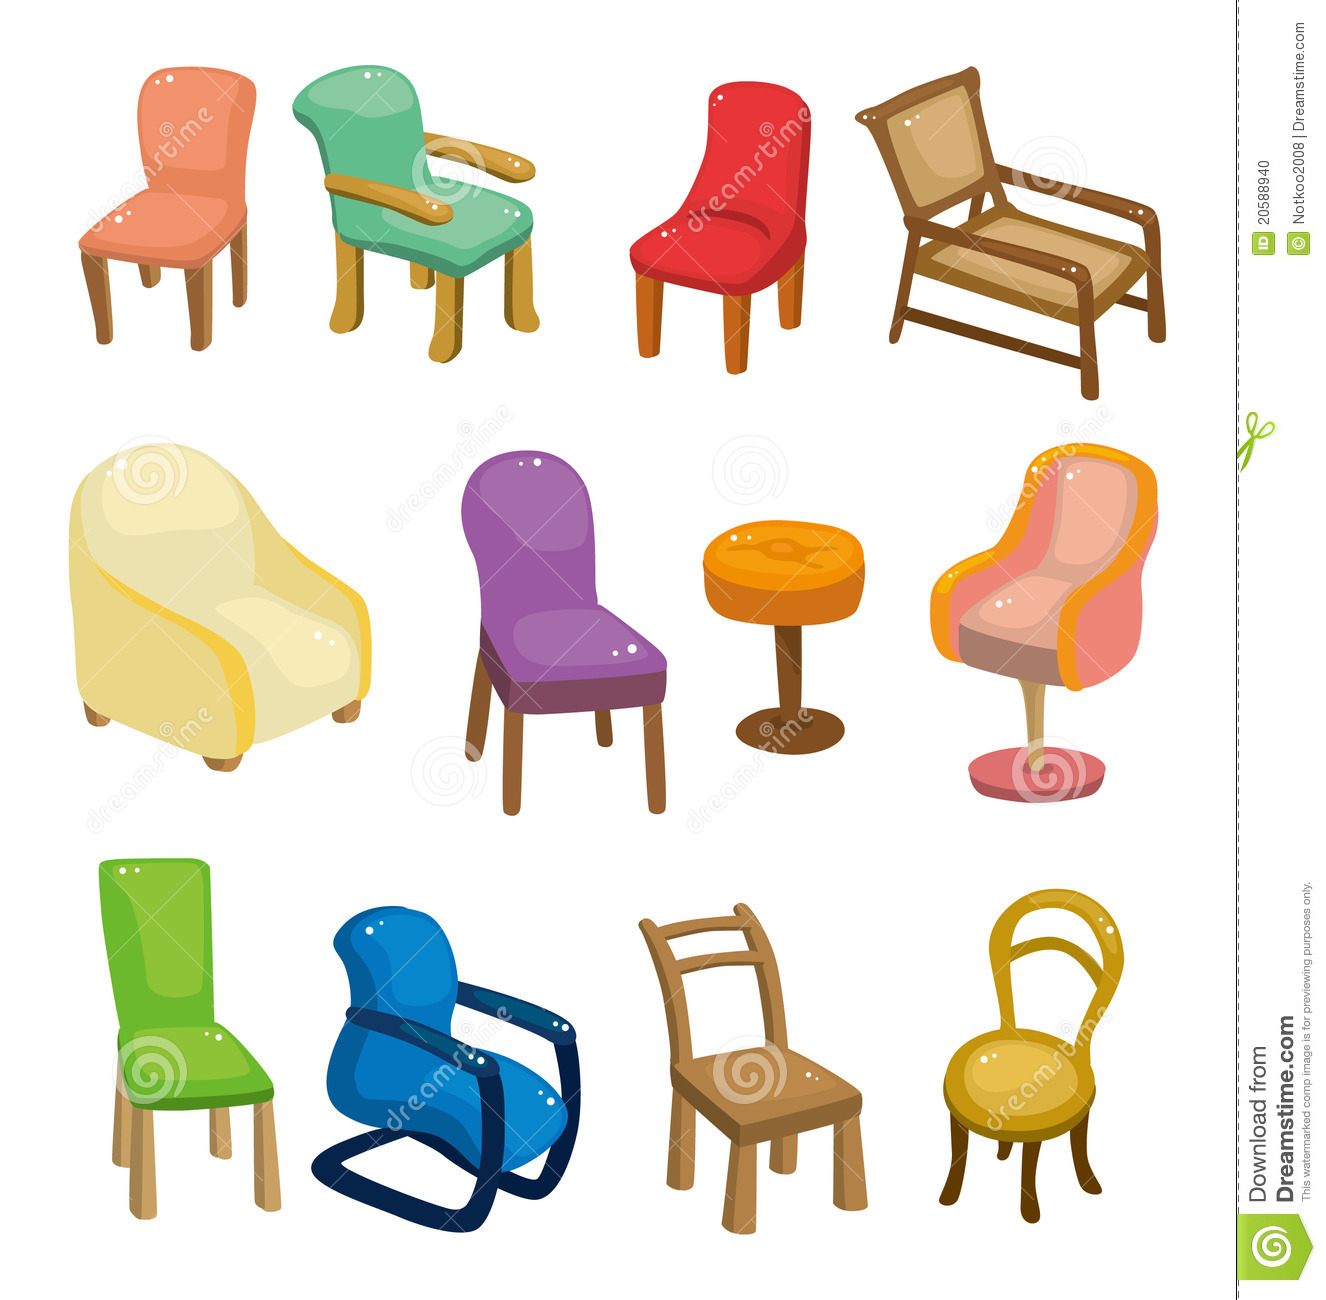 Cartoon Chair Furniture Icon Set Stock Photo - Image: 20588940